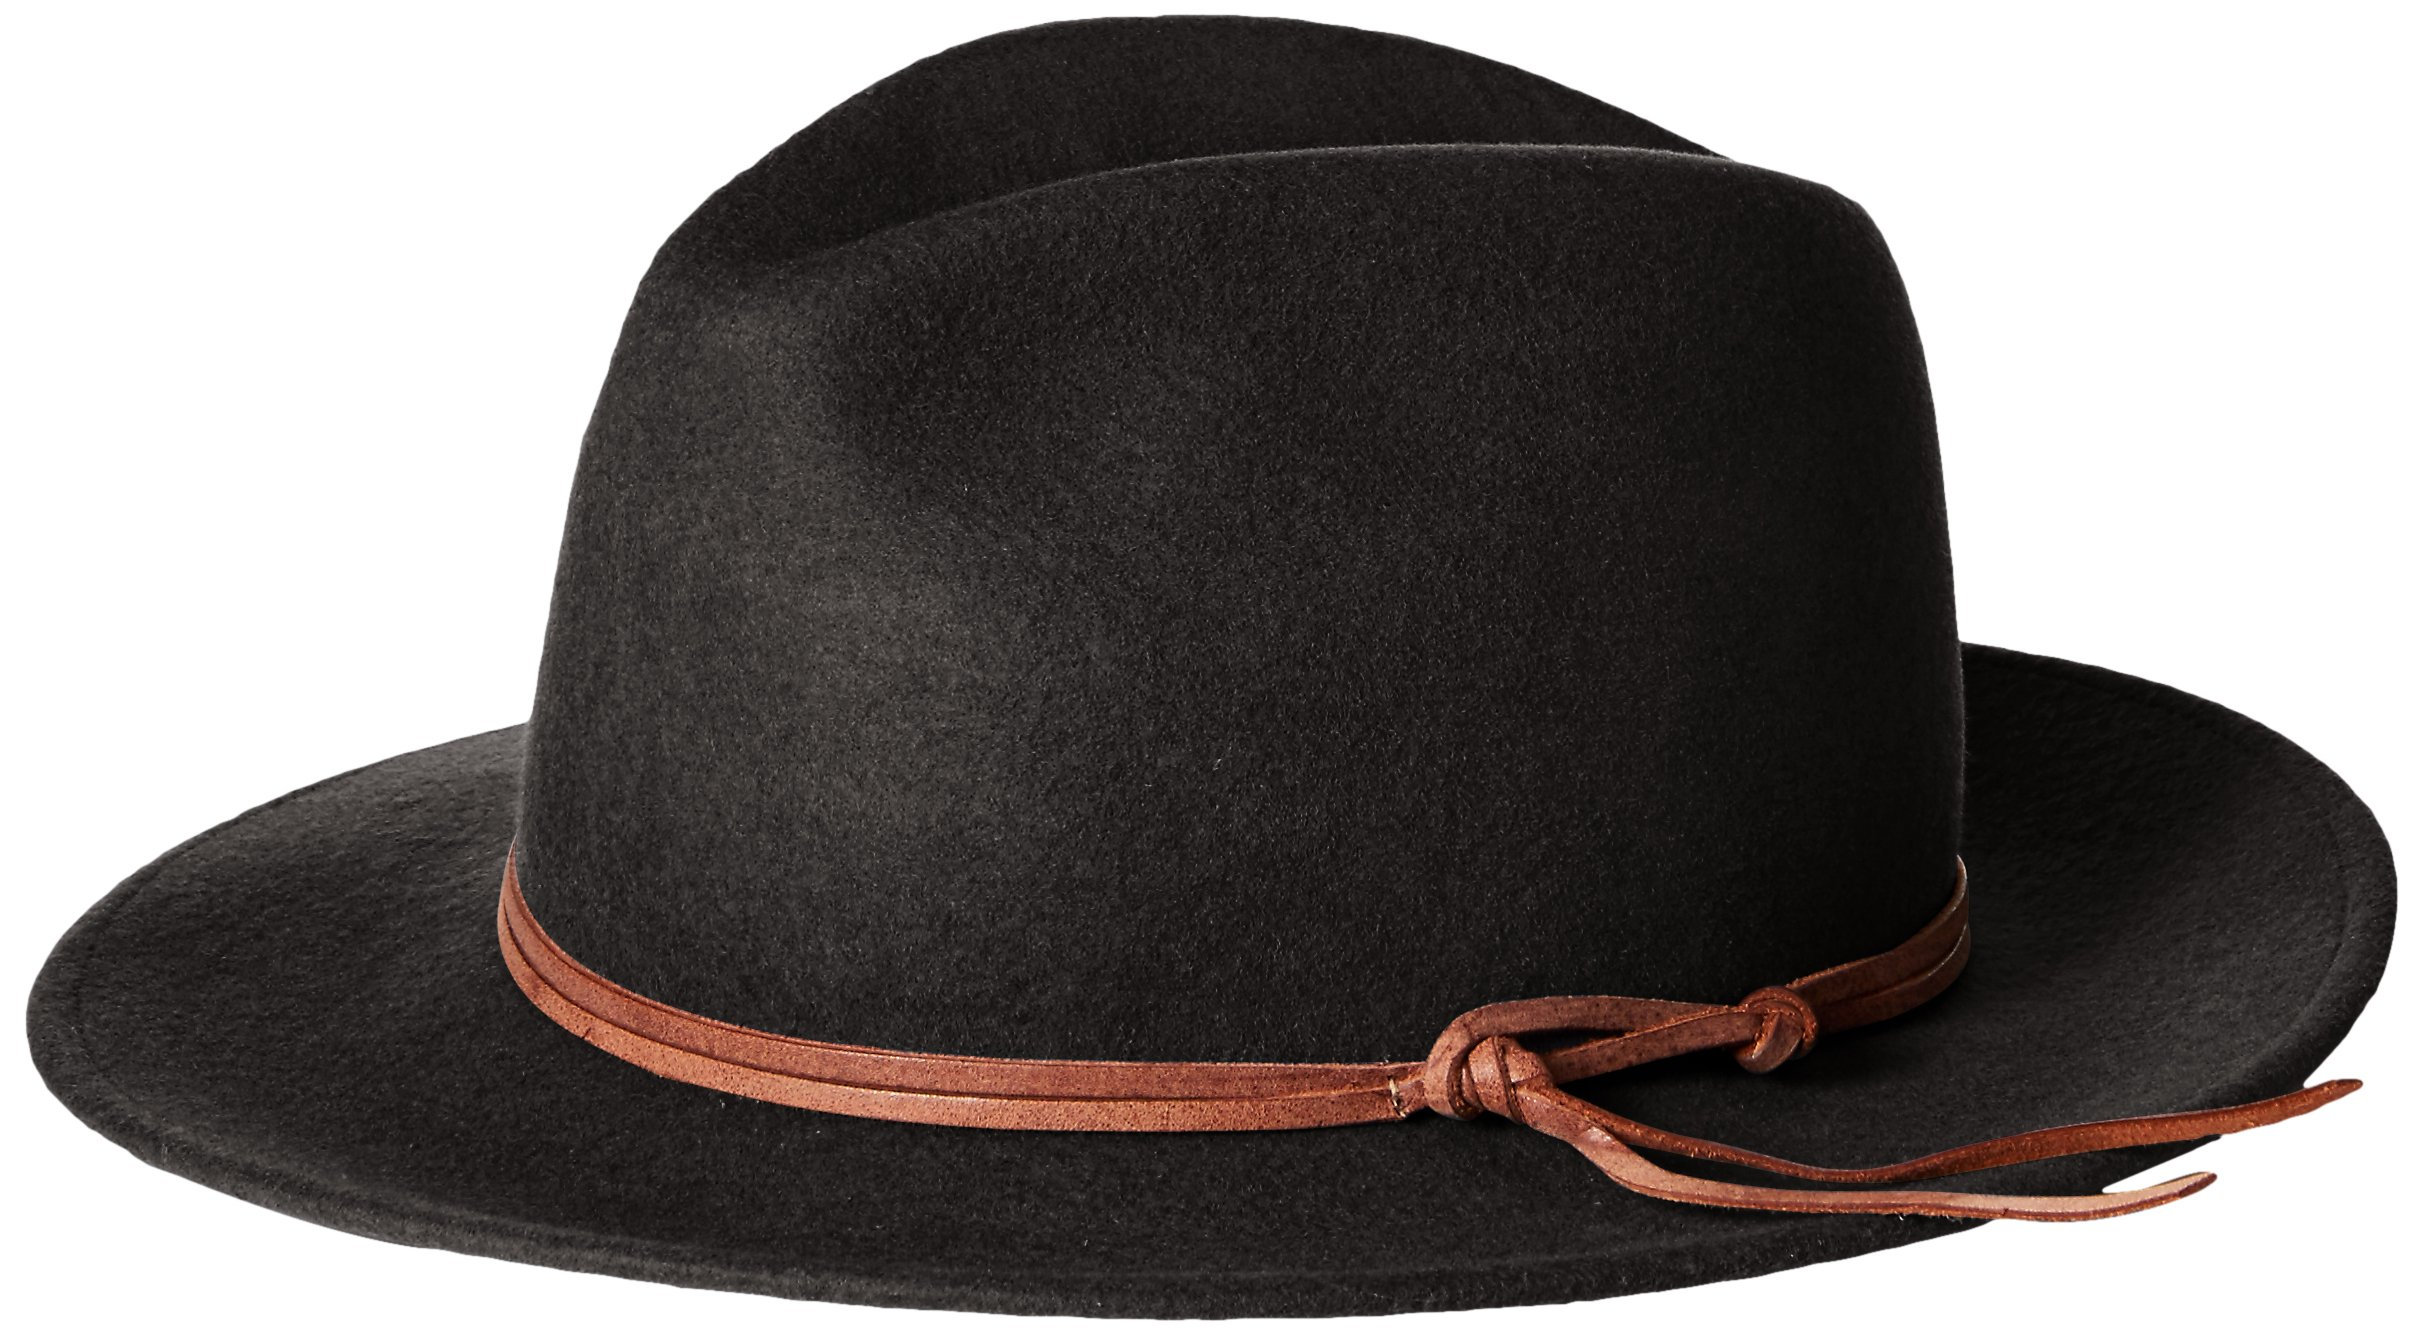 'ale by alessandra Women's Aurora Classic Adjustable Wool Felt Fedora Hat With Leather Trim and UPF 50+, Black, Adjustable Head Size by ale by Alessandra